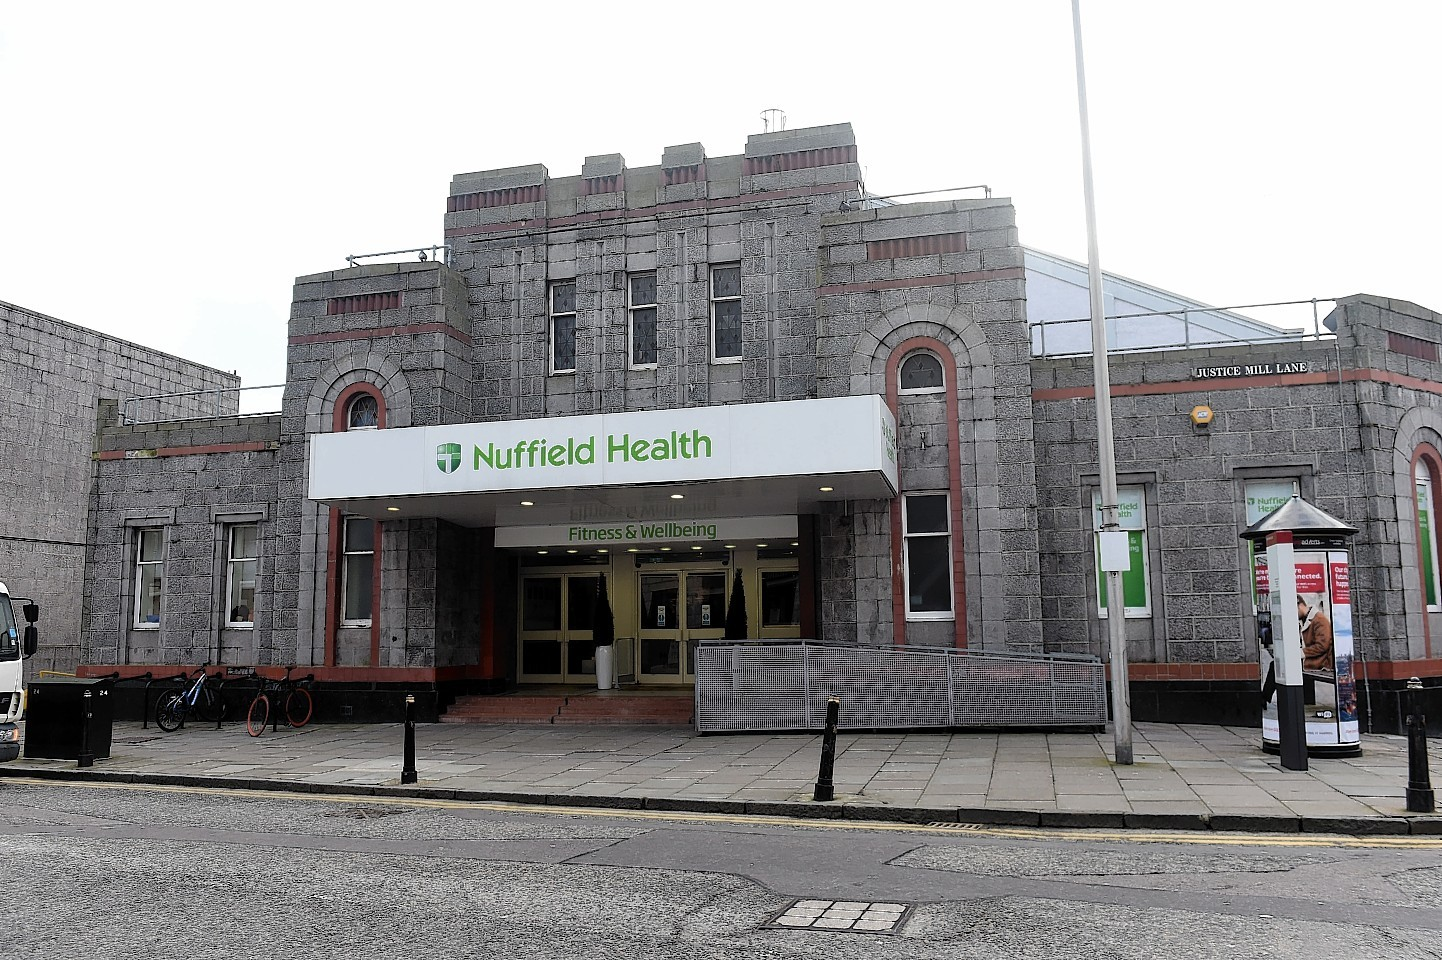 Nuffield Health Club on Justice Mill Lane